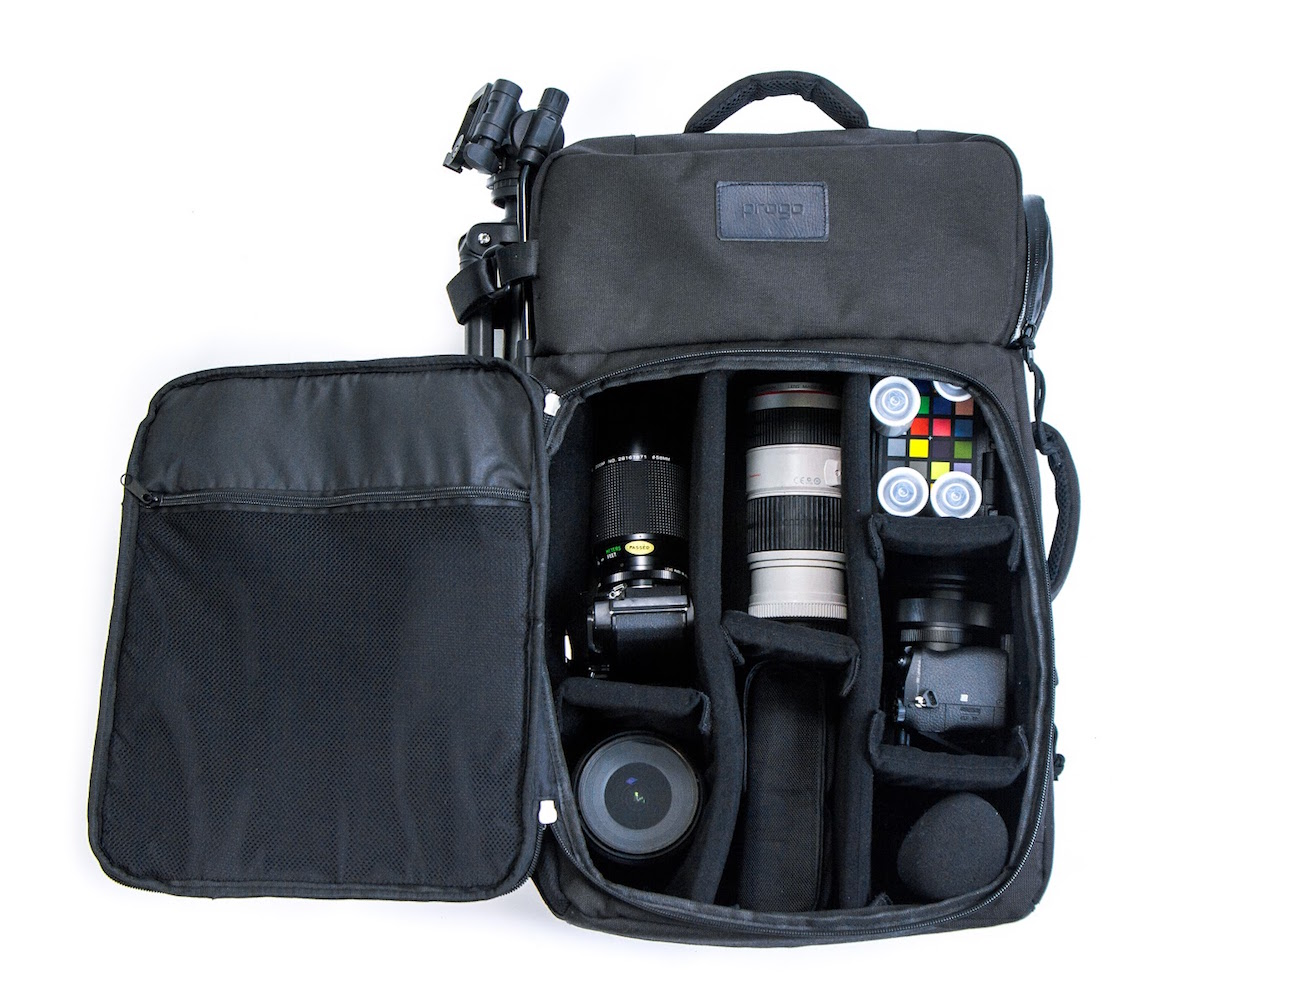 Progo – A Revolutionary Carry-on or Camera Backpack